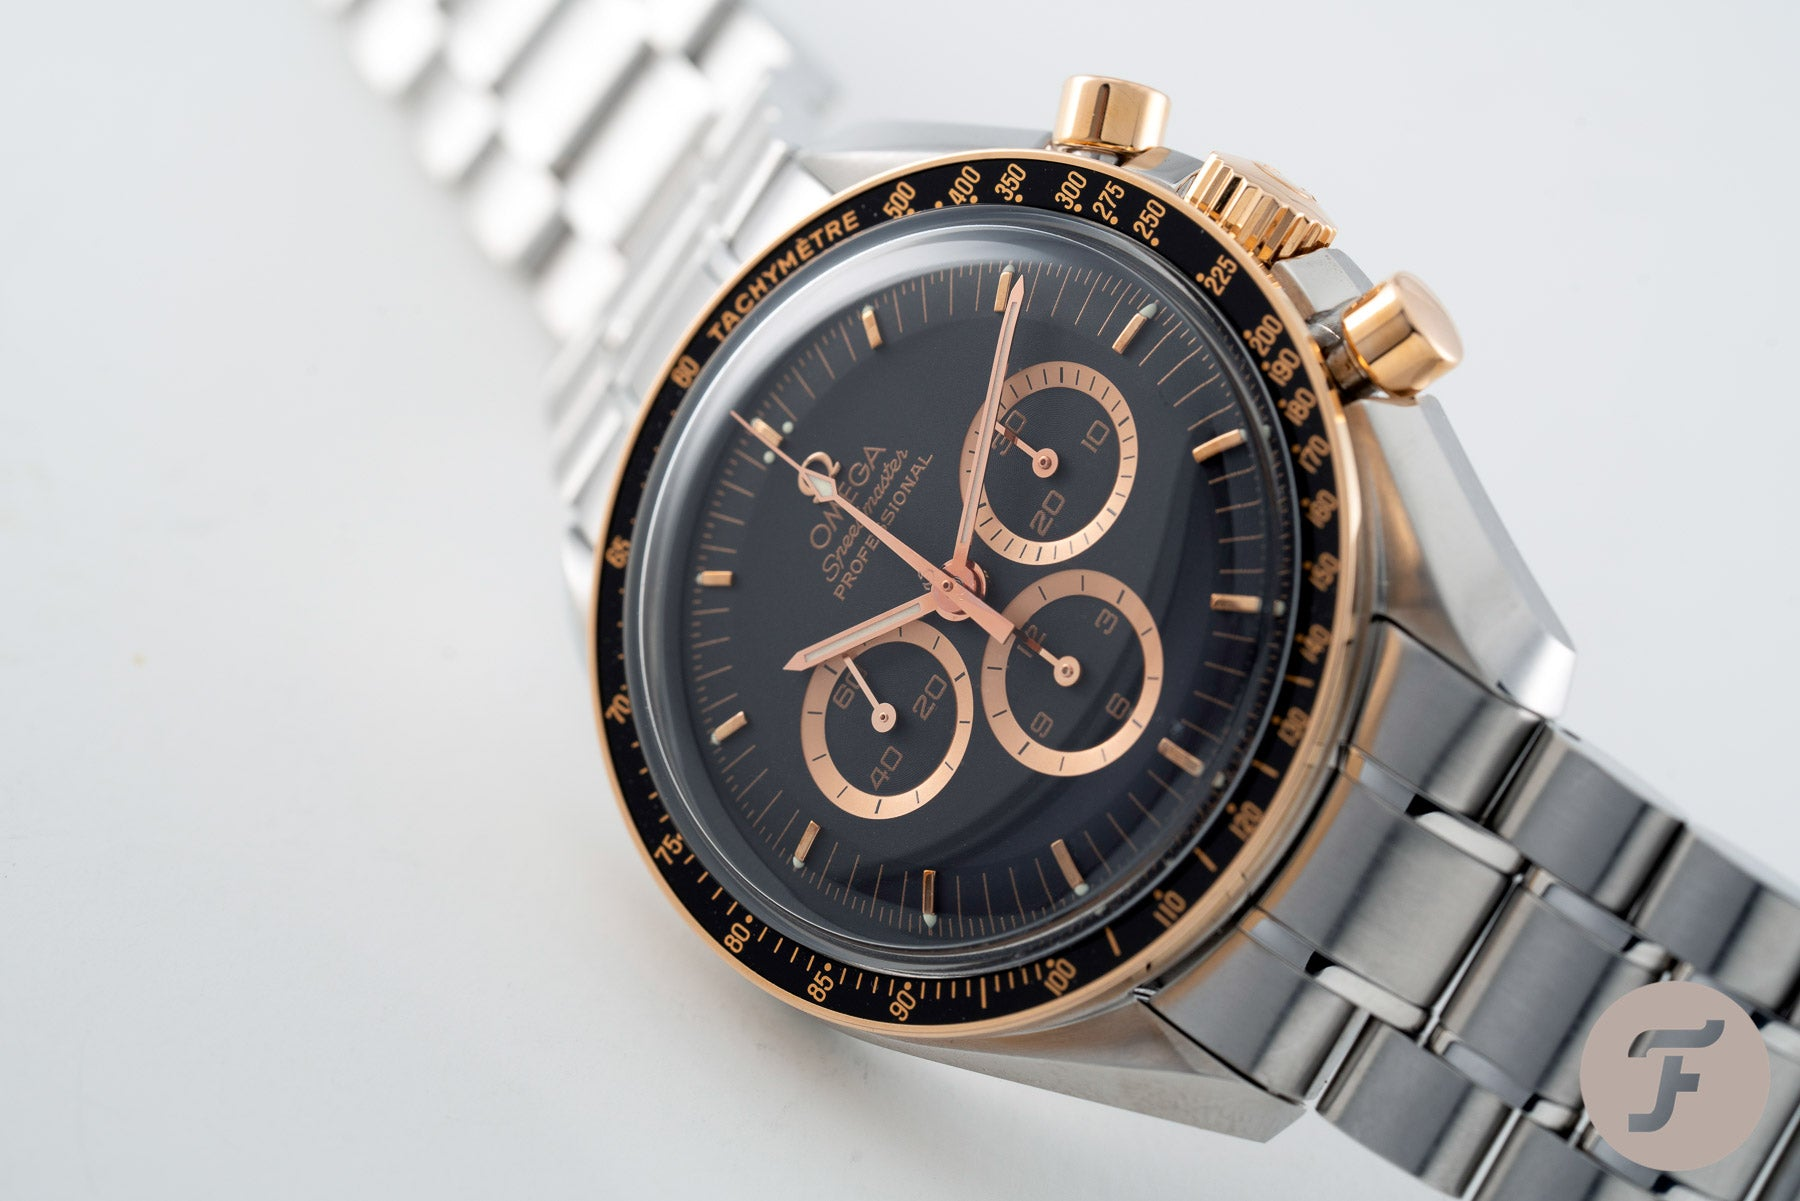 Omega Speedmaster Apollo 15 35th Anniversary (2006)